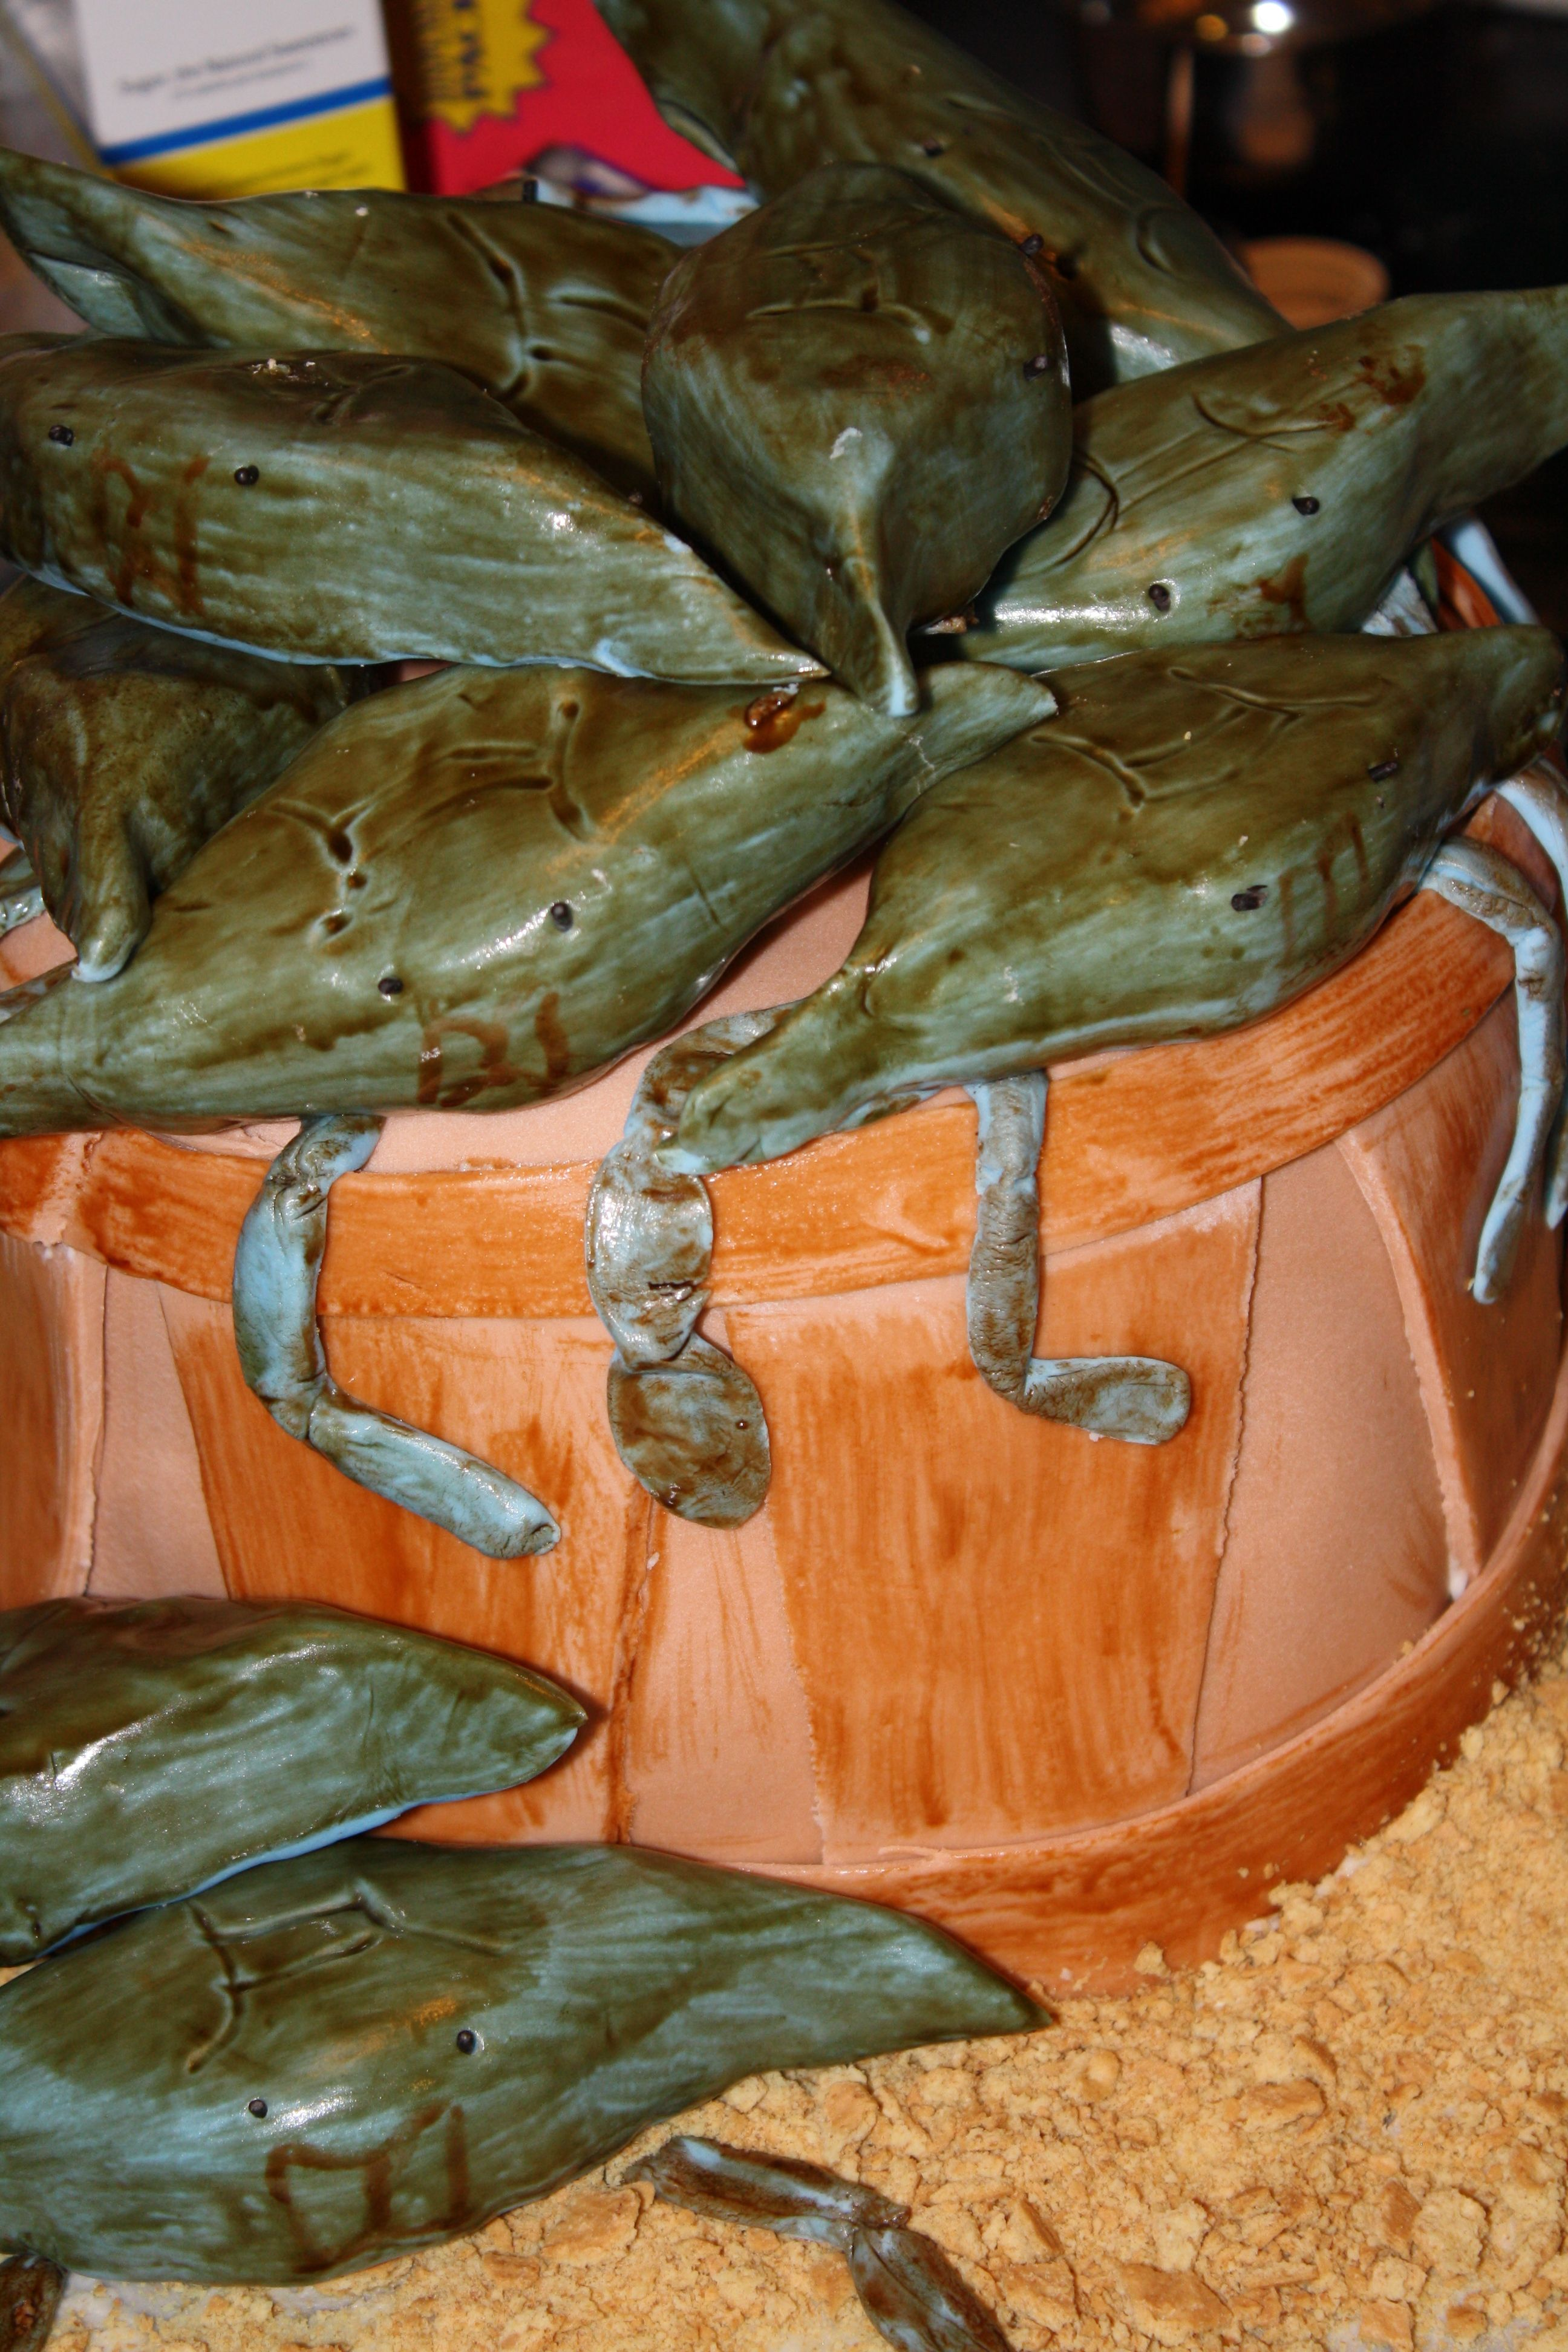 Bushel of crabs first time me and bf tried using fondant